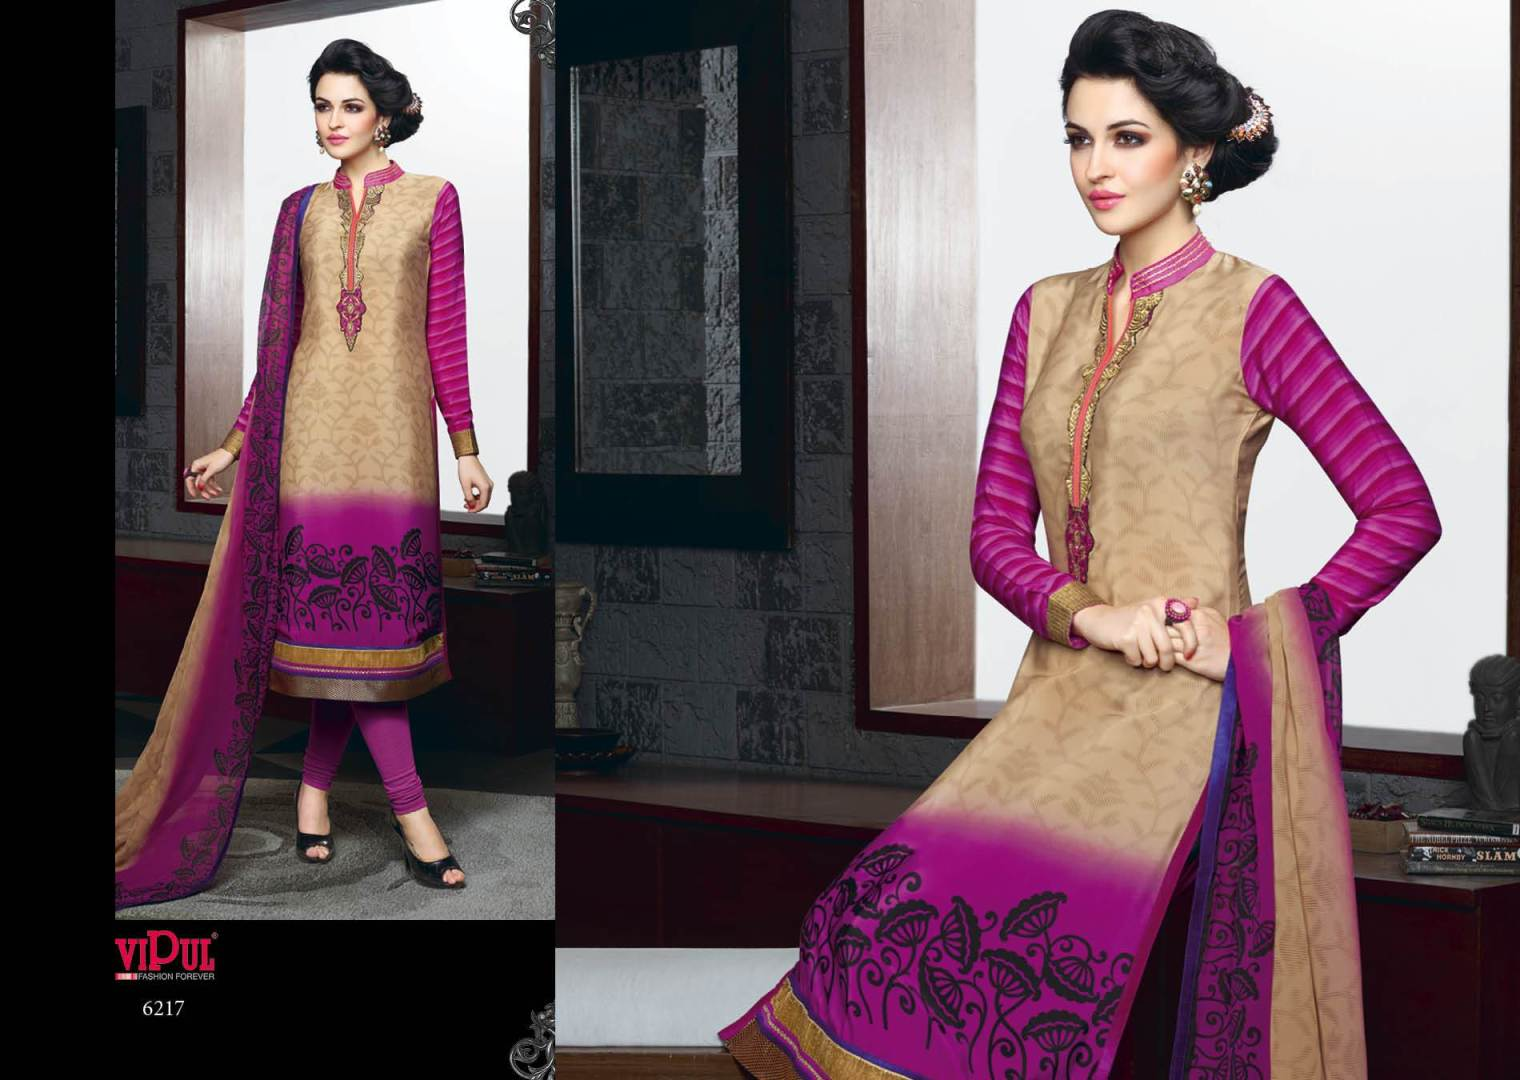 vipul-gloria-design-no-6217